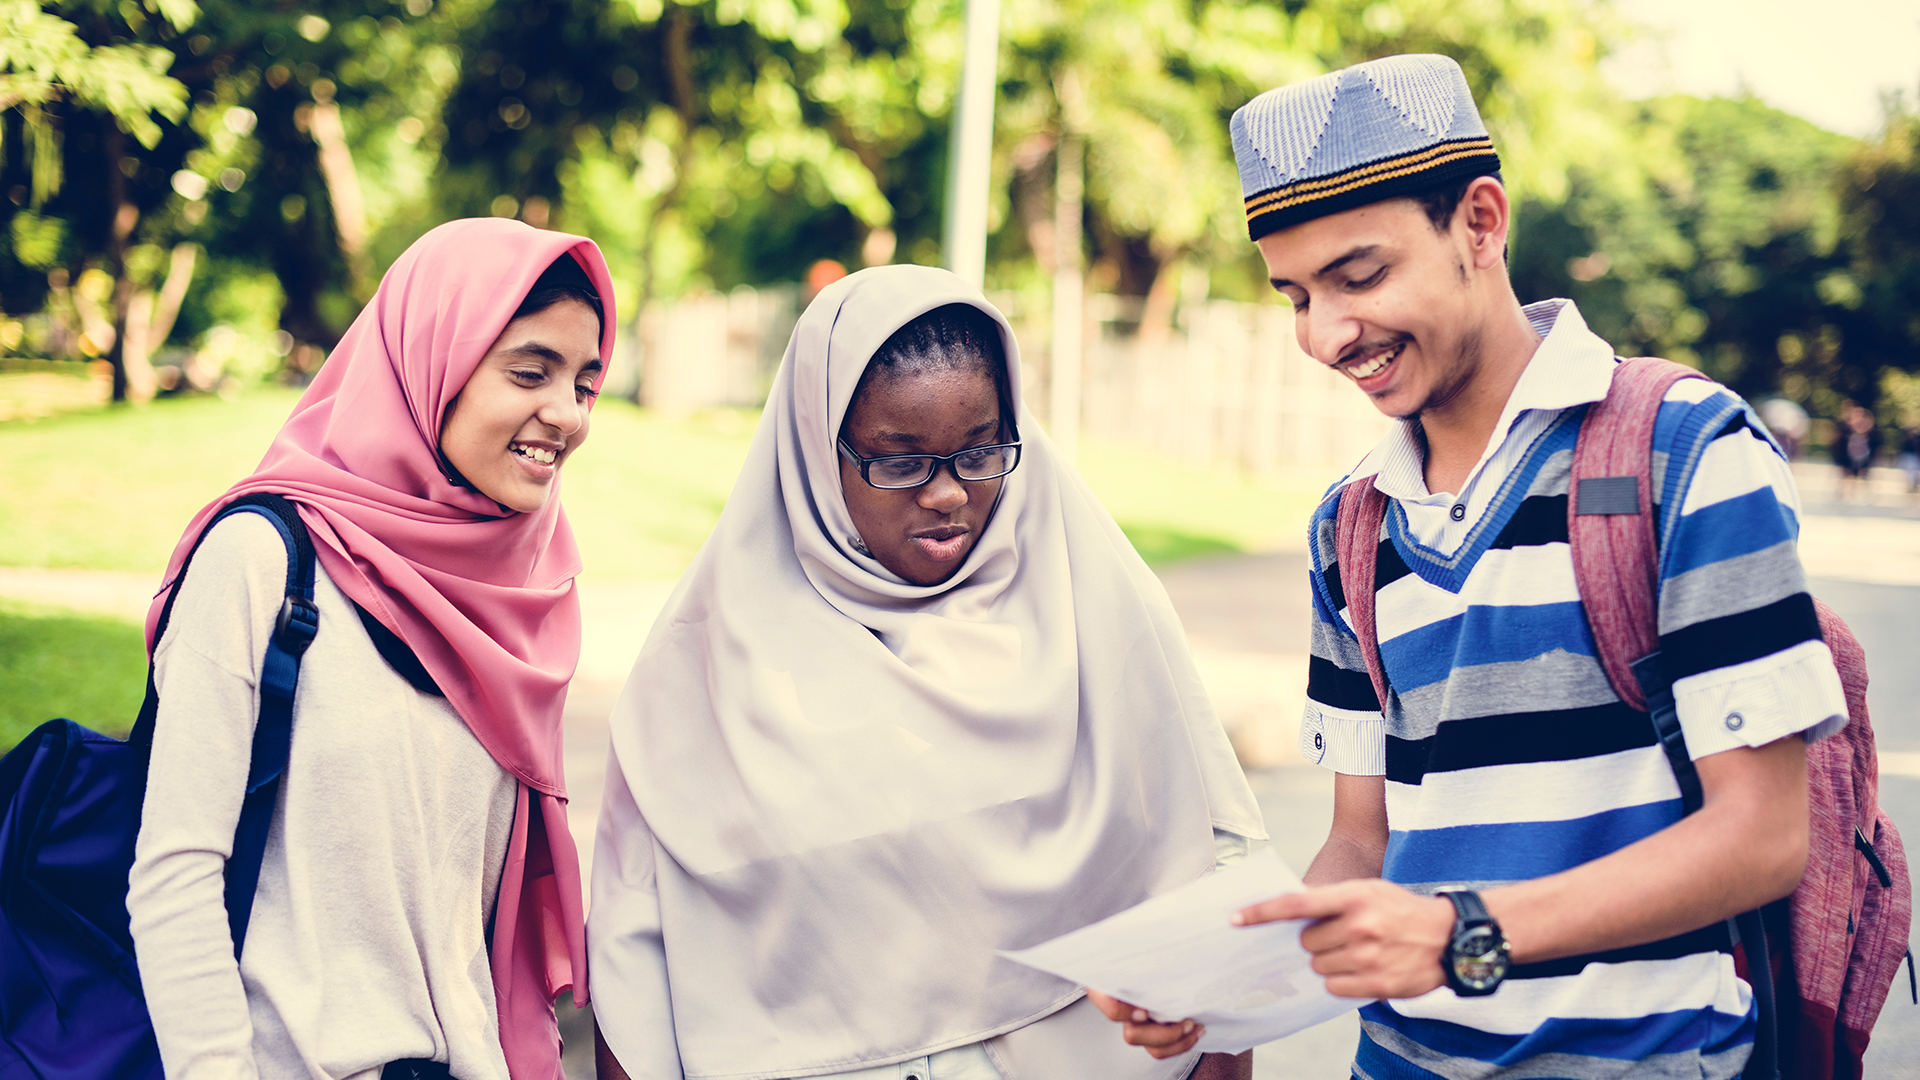 Photo of diverse group of two young women wearing headscarves and a young man wearing a hat looking at a paper.